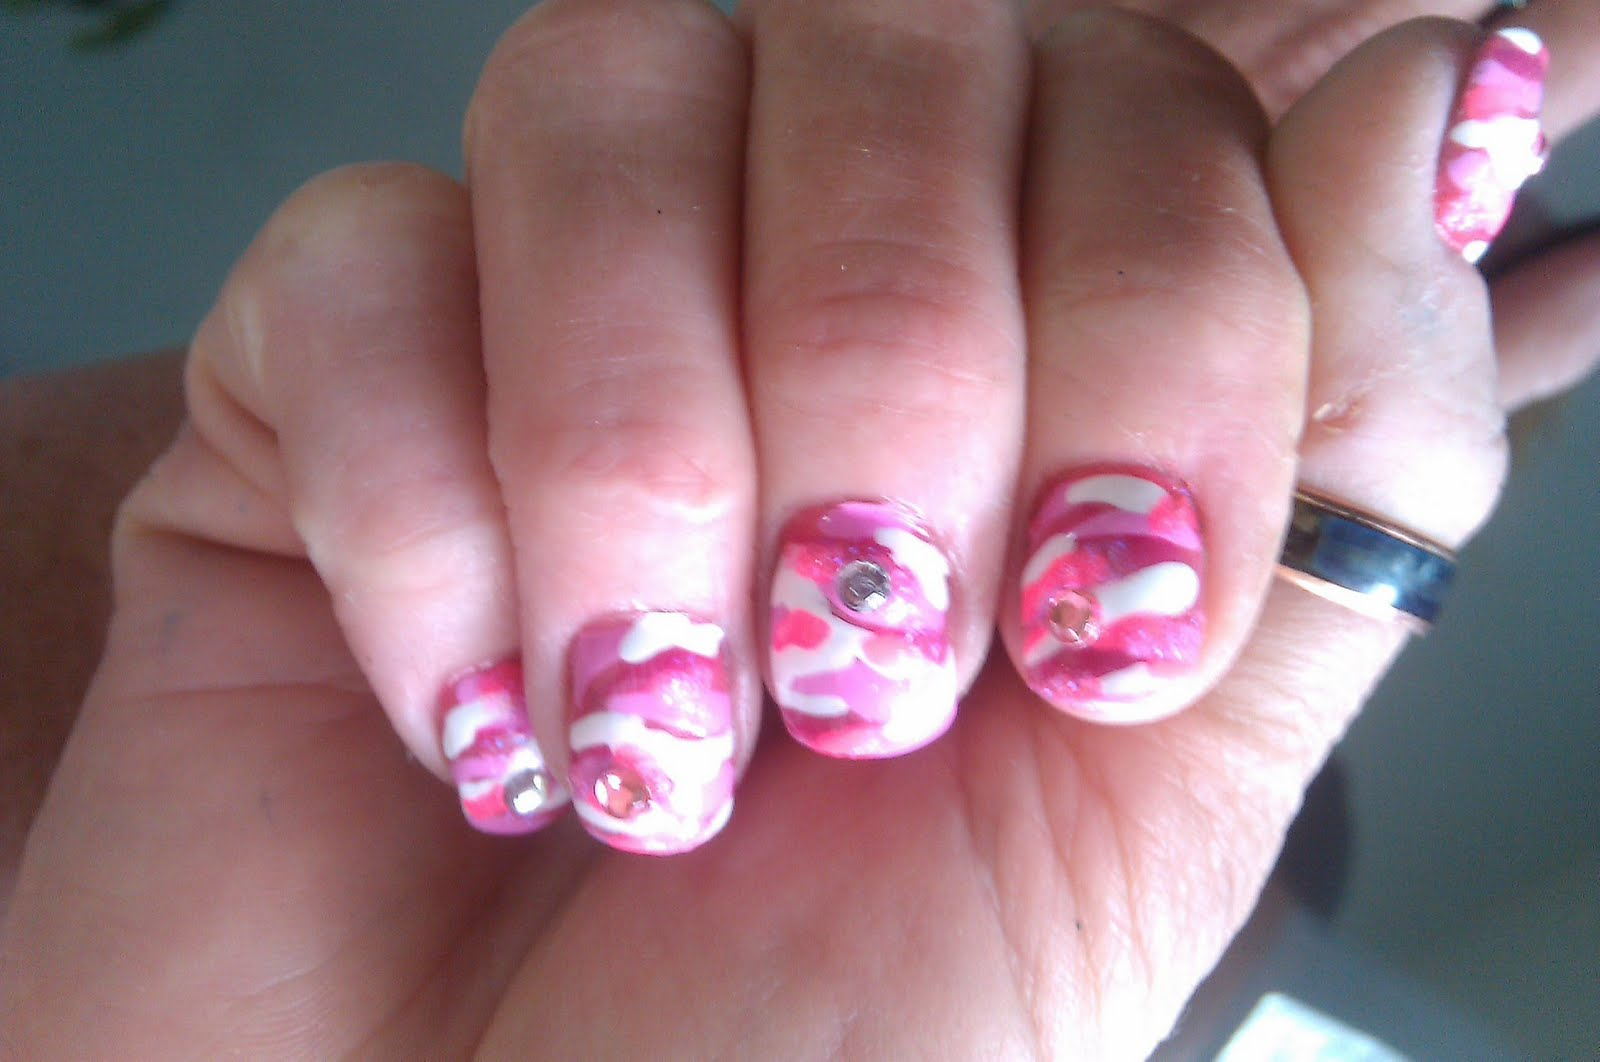 Nails Done Right: Spring into P!nk !!!